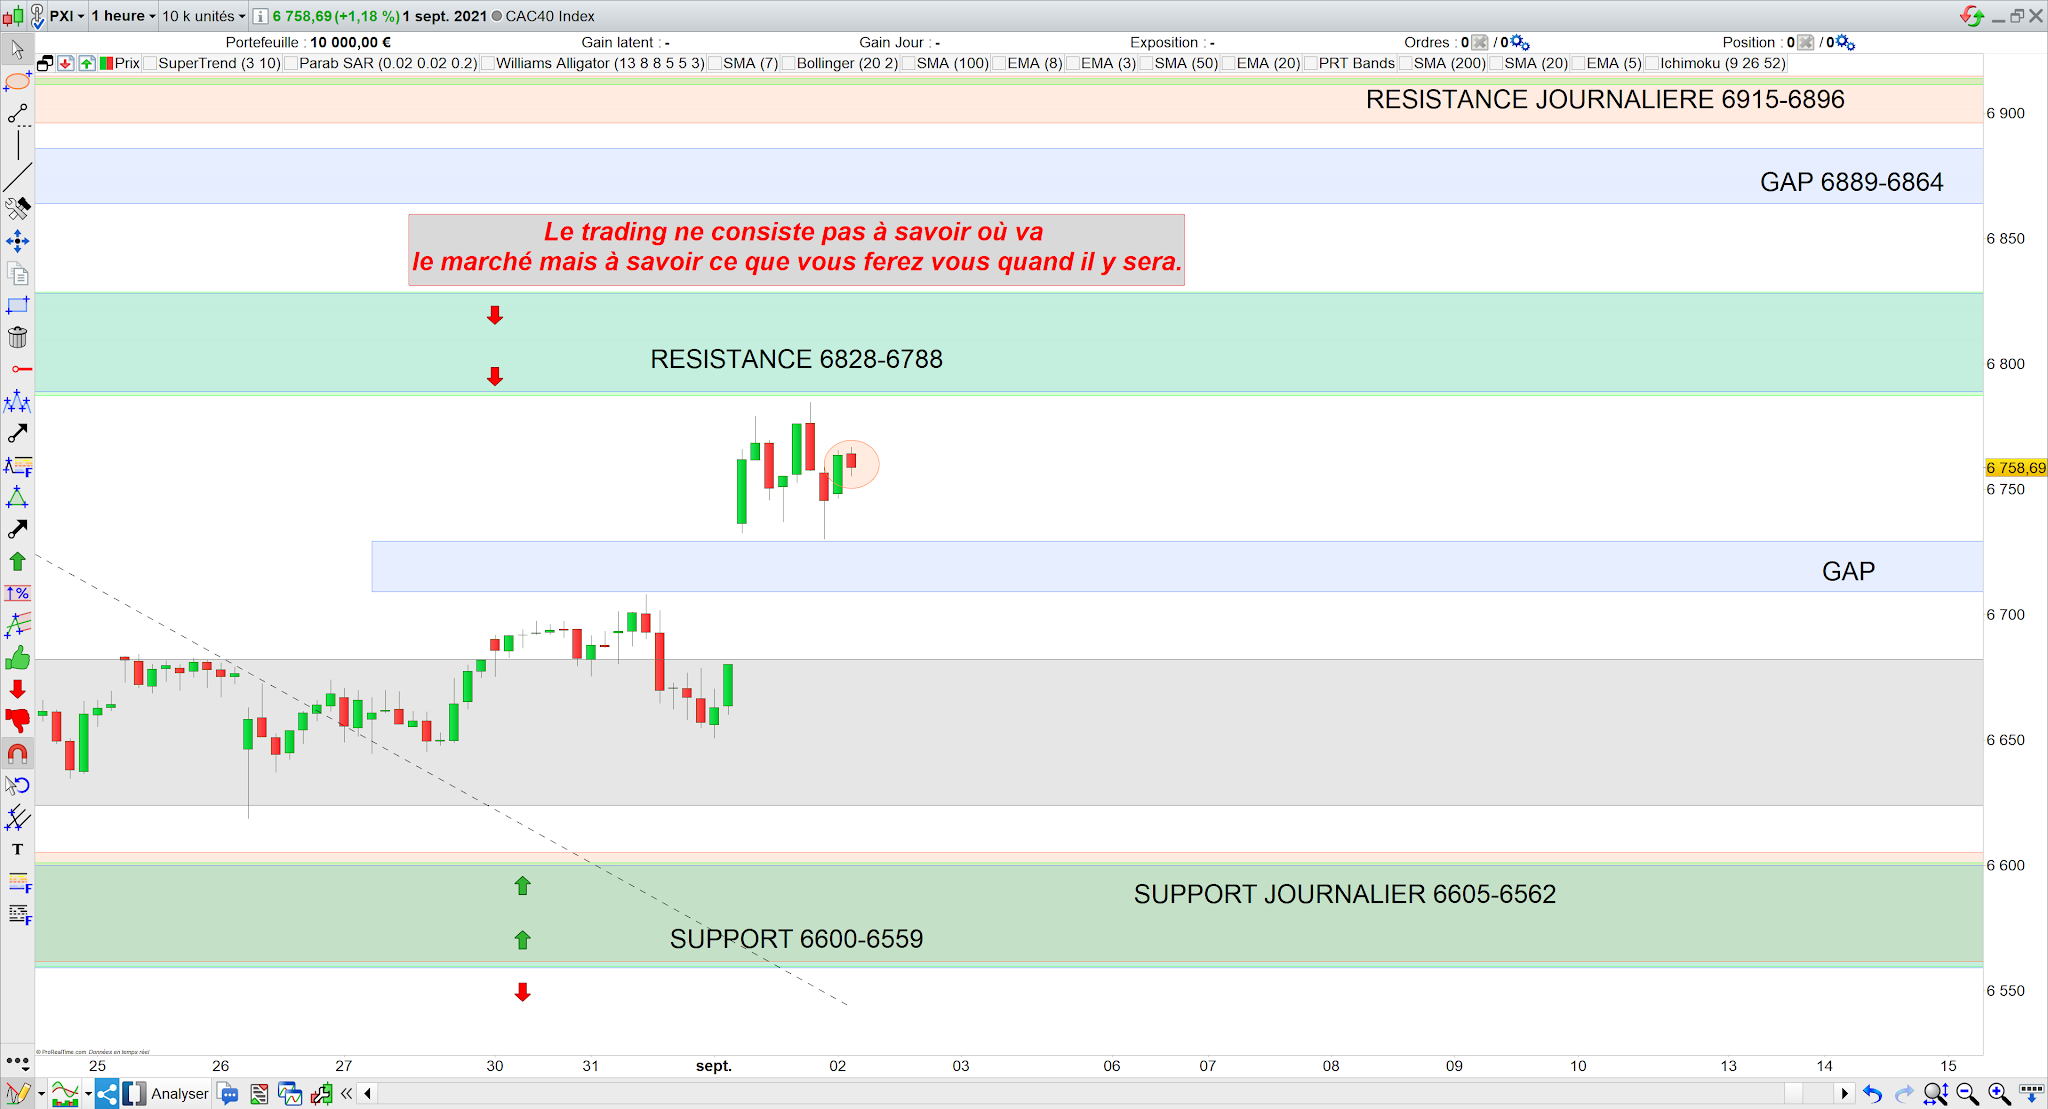 Trading cac40 02/09/21